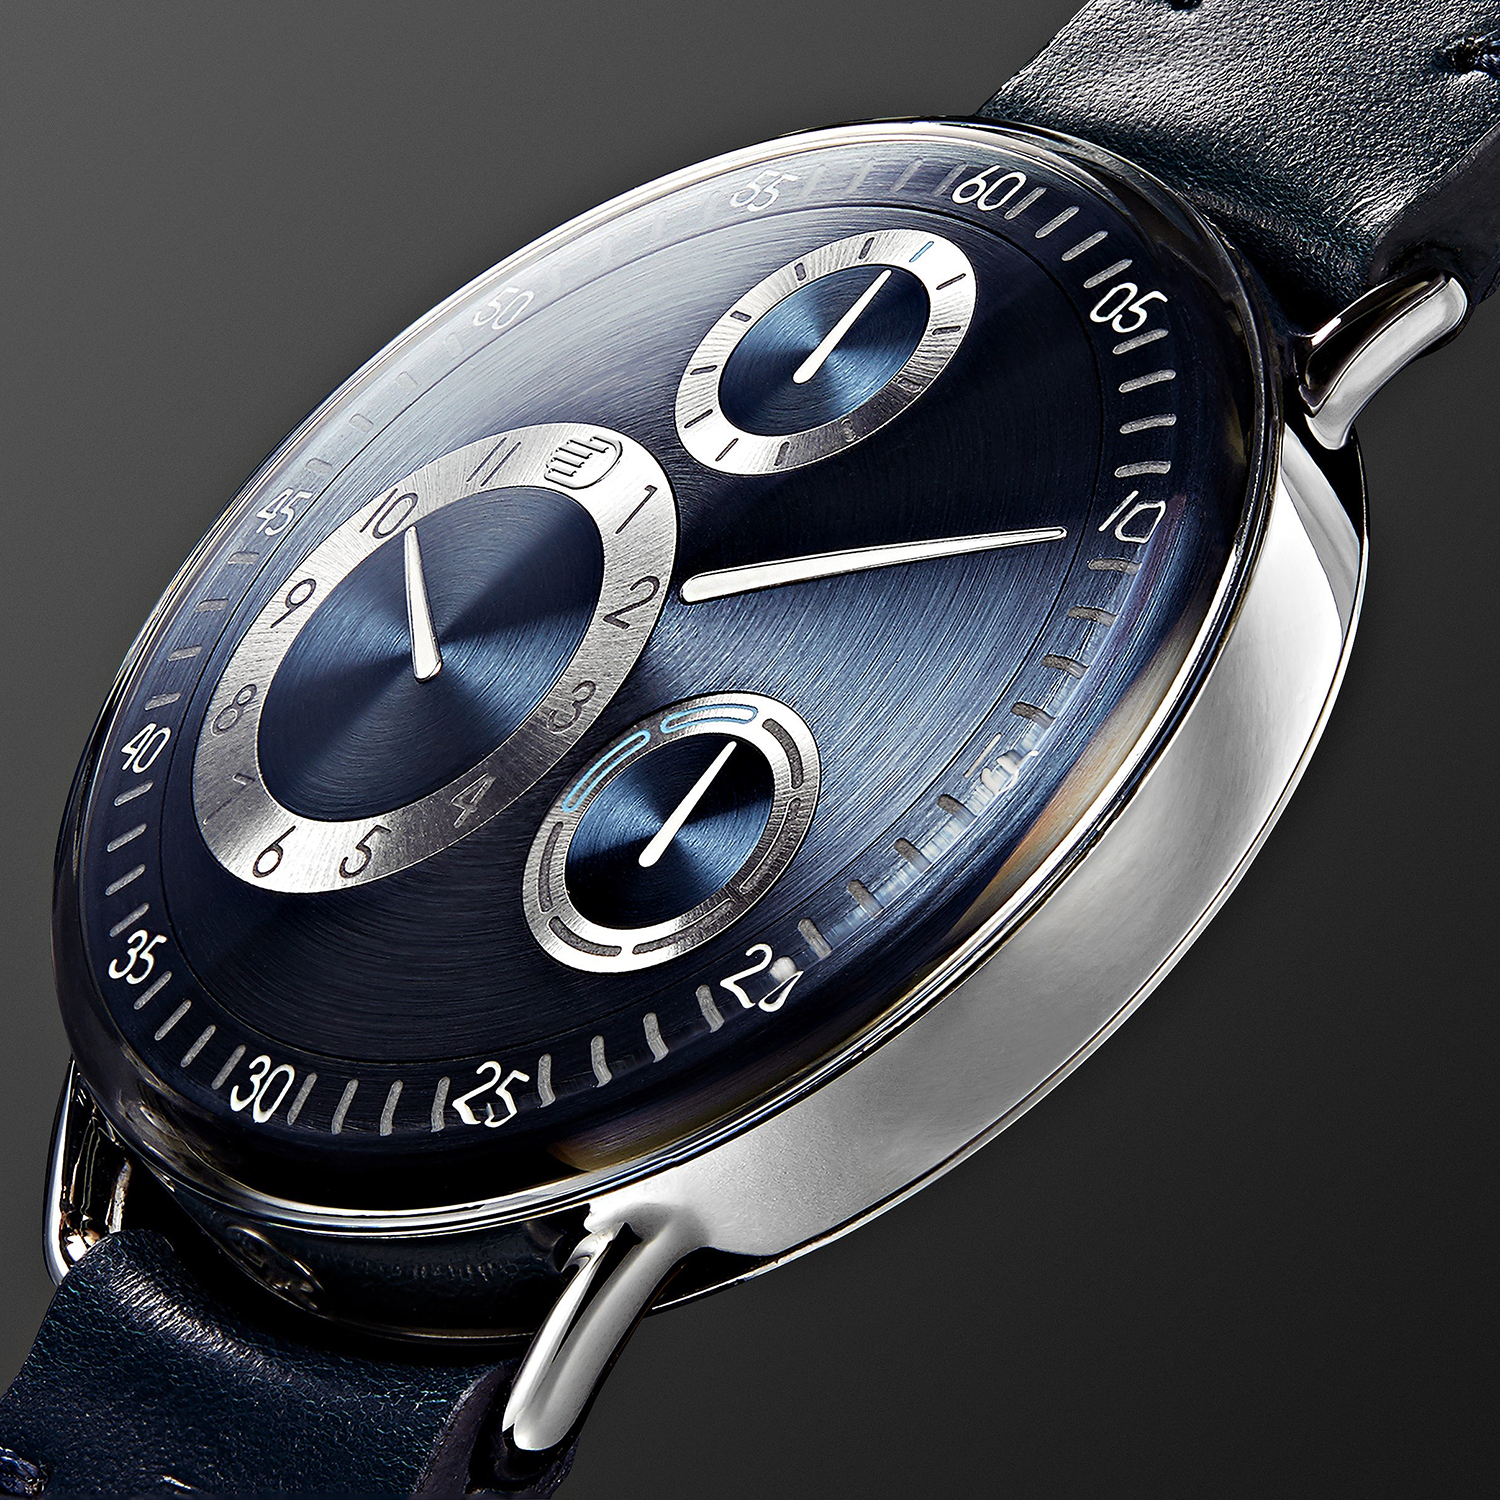 Limited Edition TYPE 1 Ressence Watches for Mr. Porter